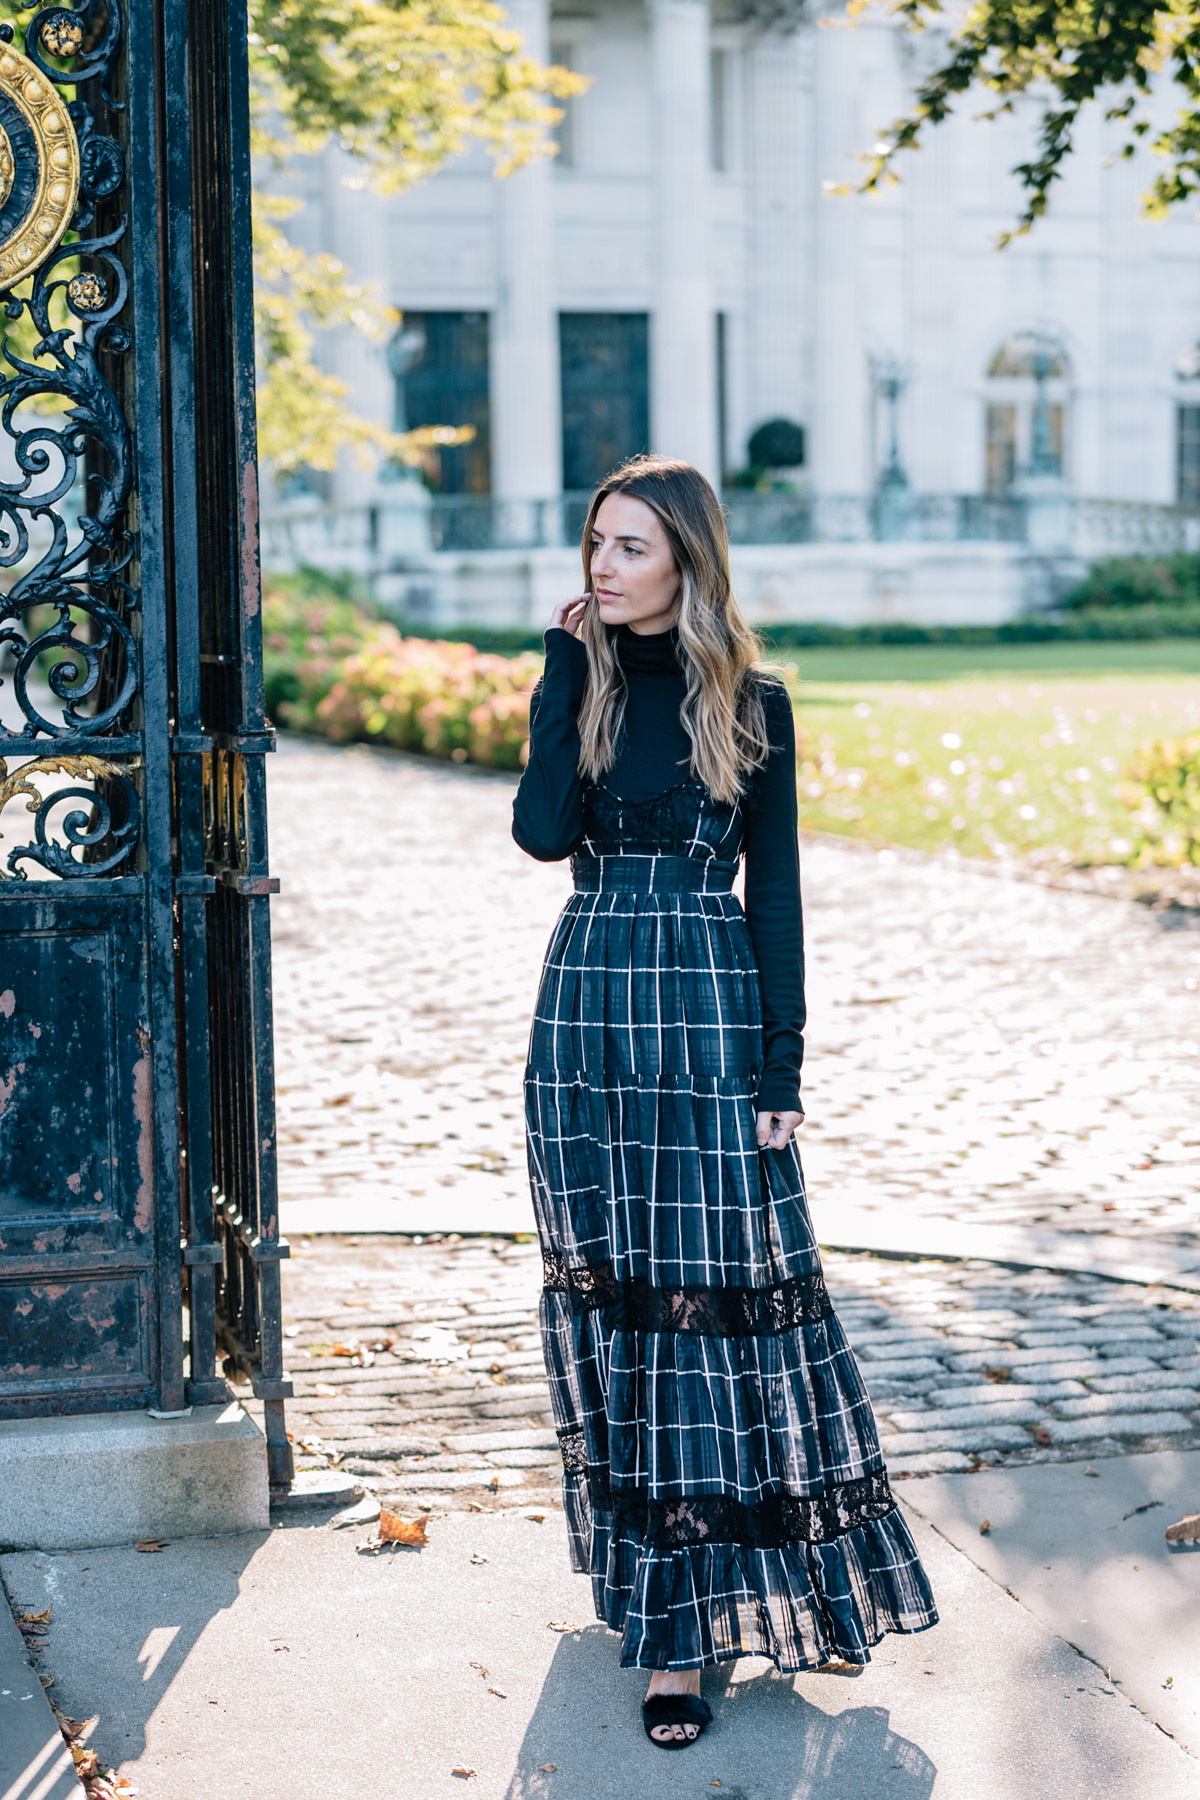 Jess Ann Kirby plaid maxi dress vetiver communication breakdown ...